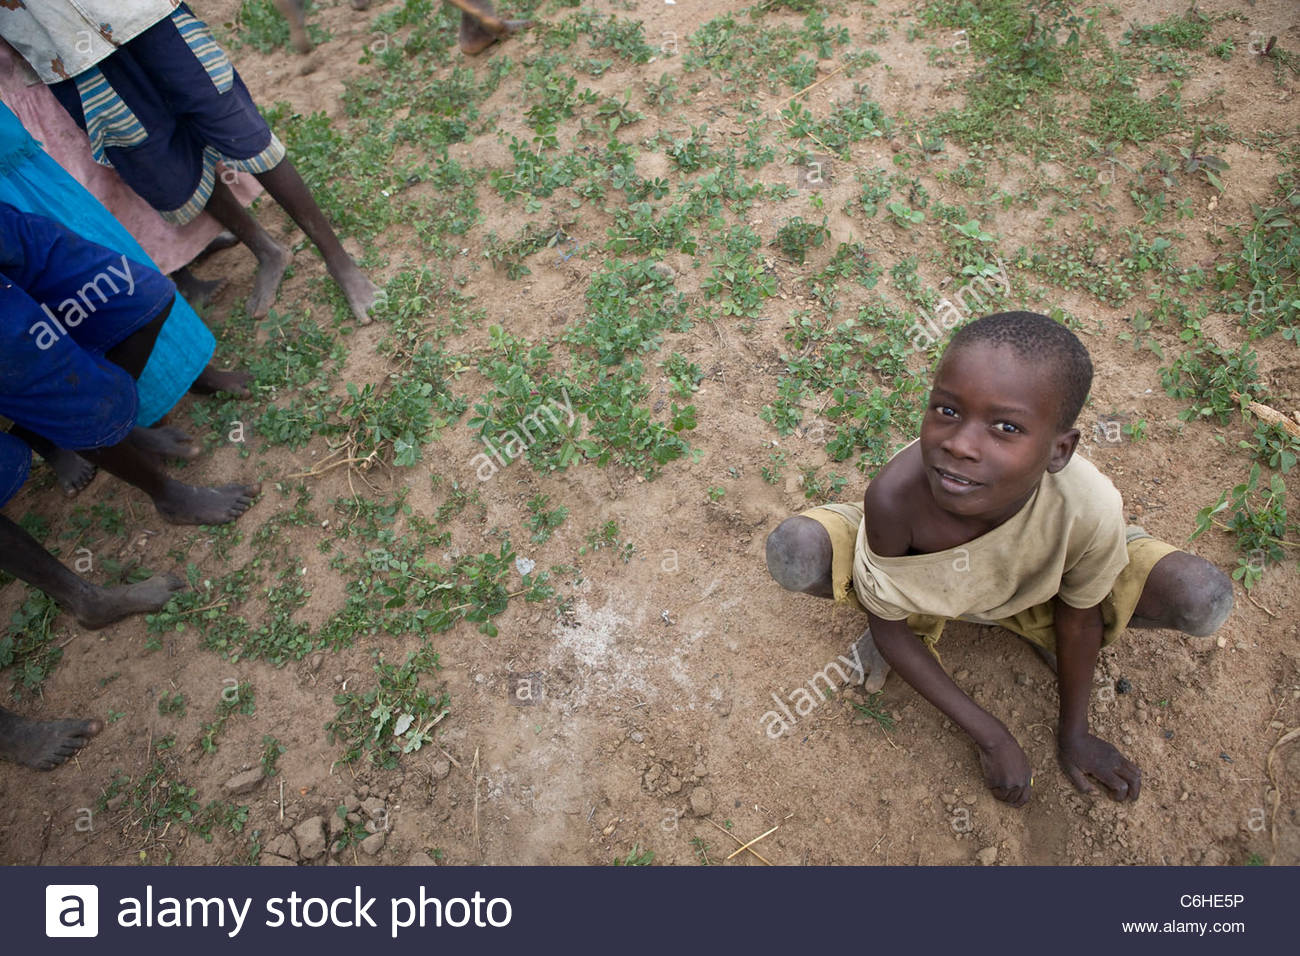 Child in Acowa refugee camp - Stock Image